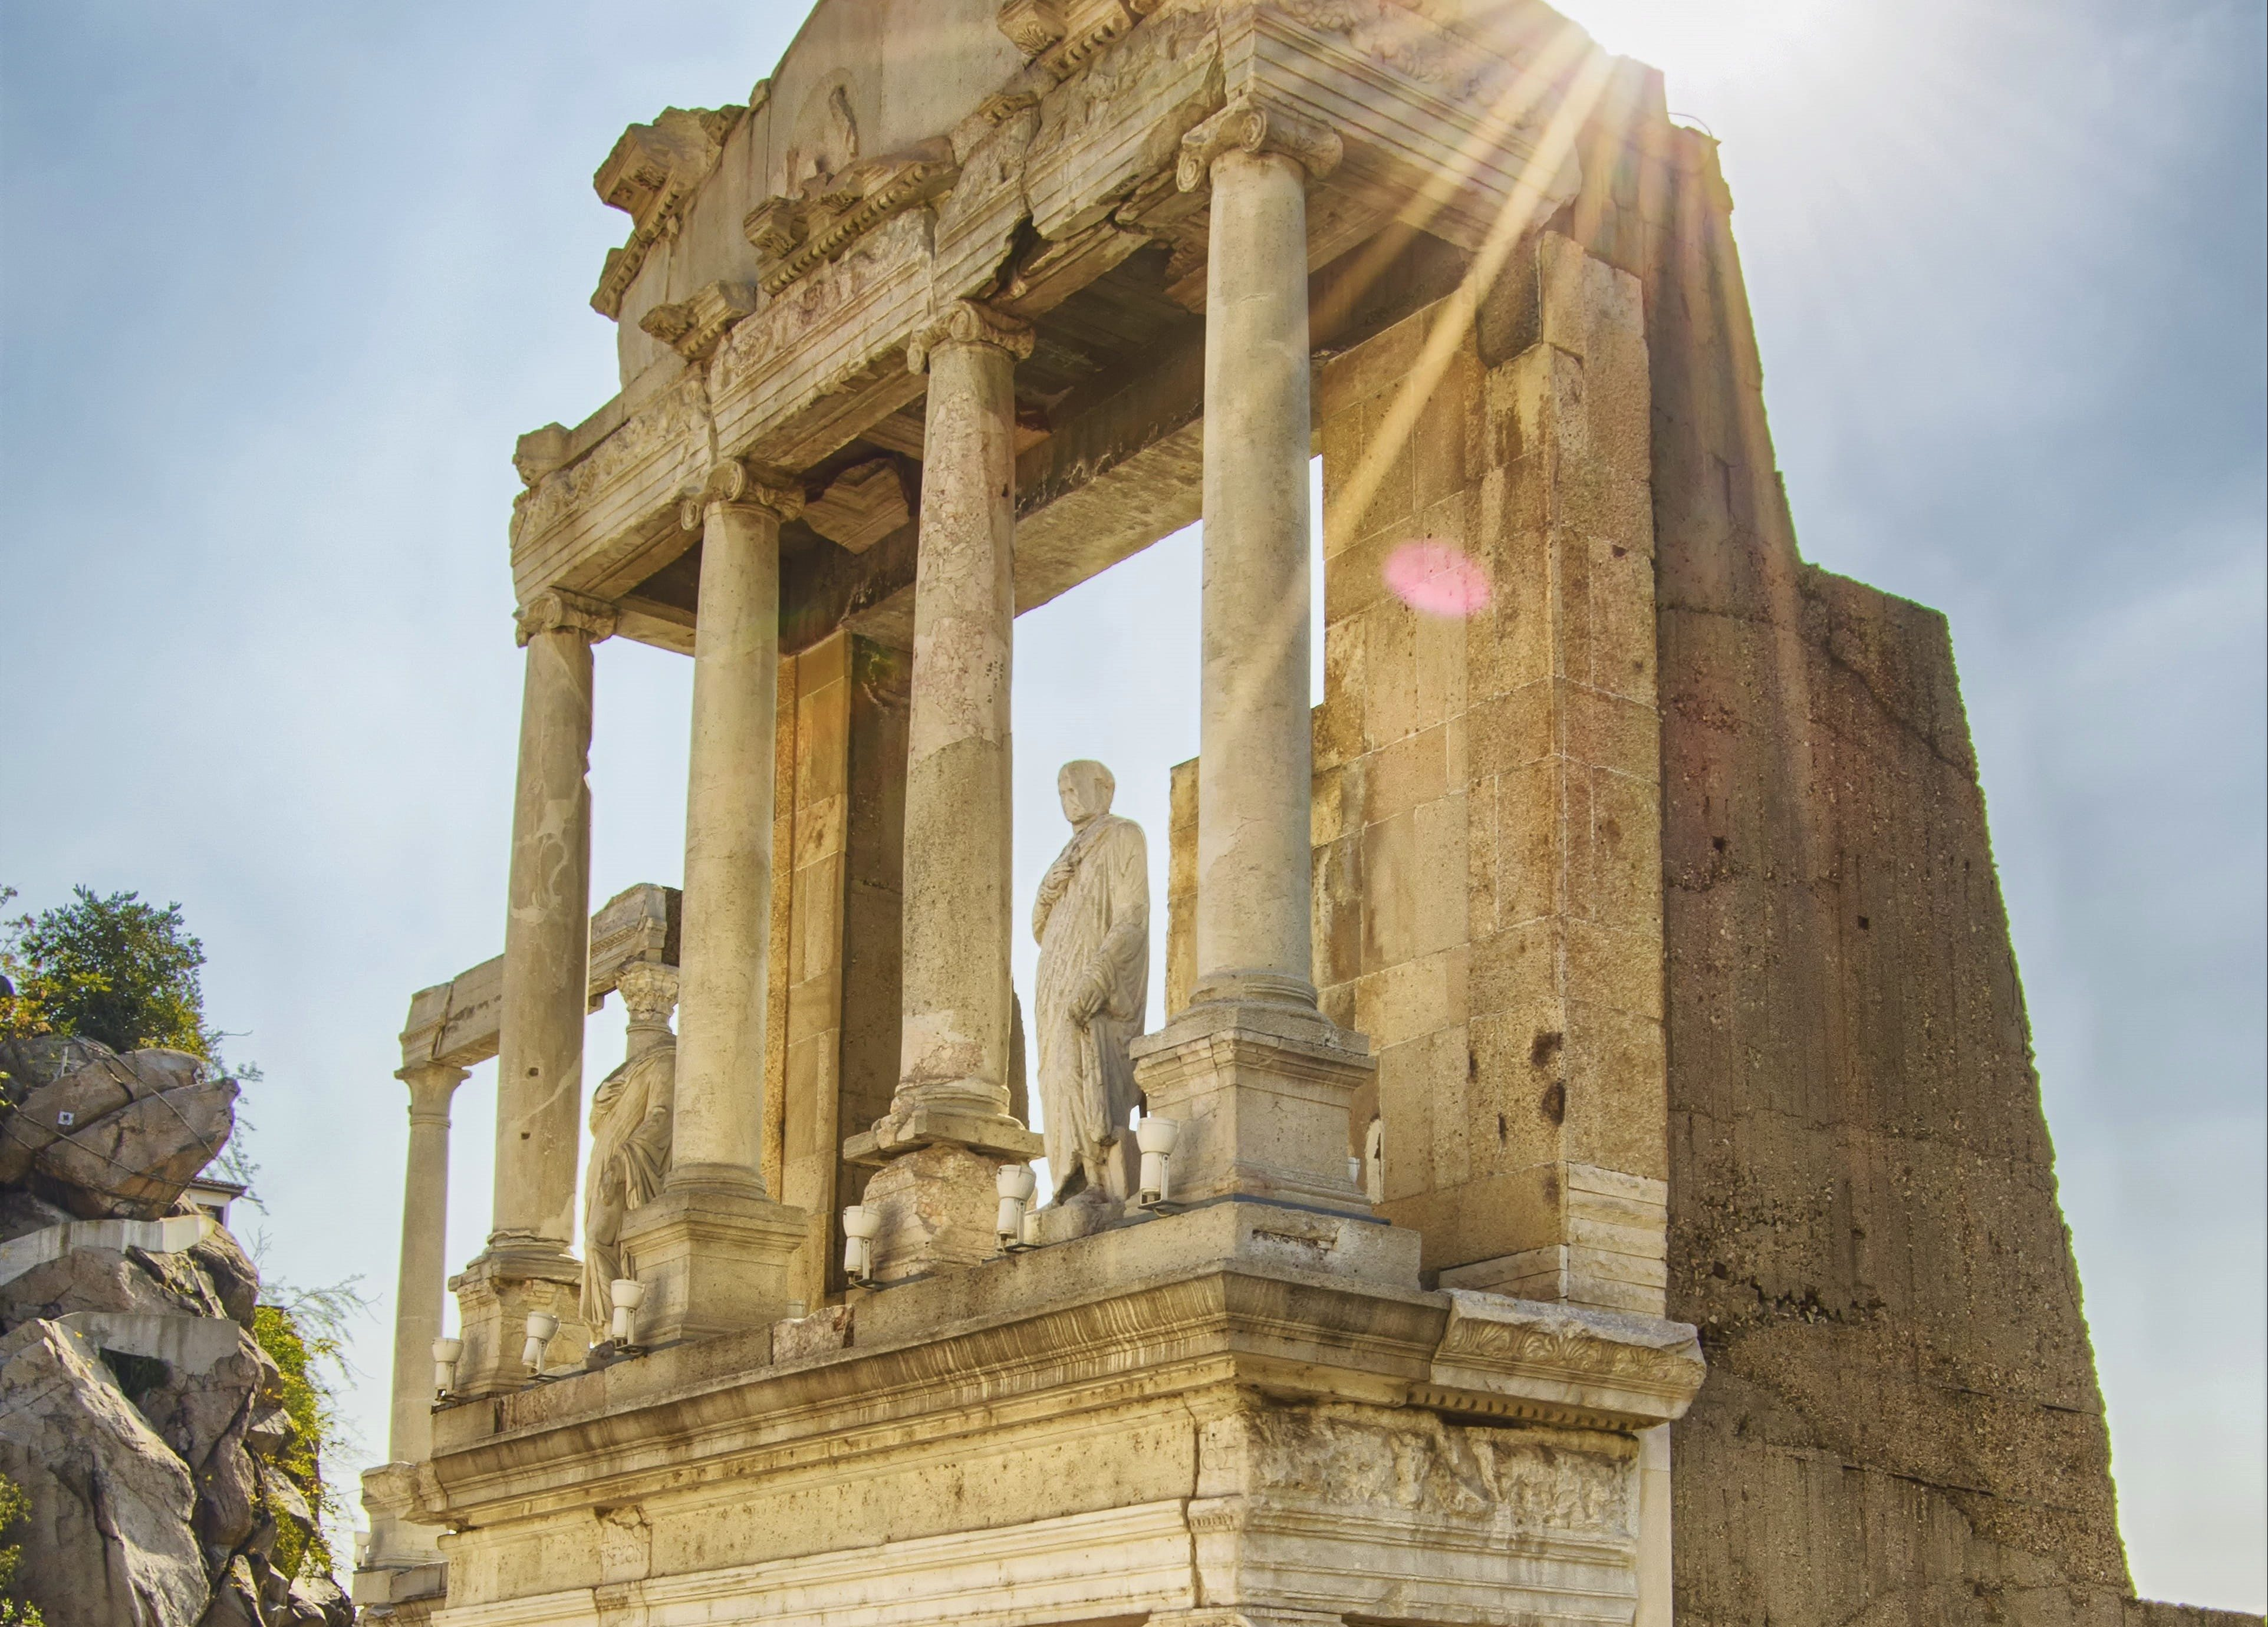 Roman theatre, ancient ruins, Parodos, statue, scaenae frons, stage, sunny